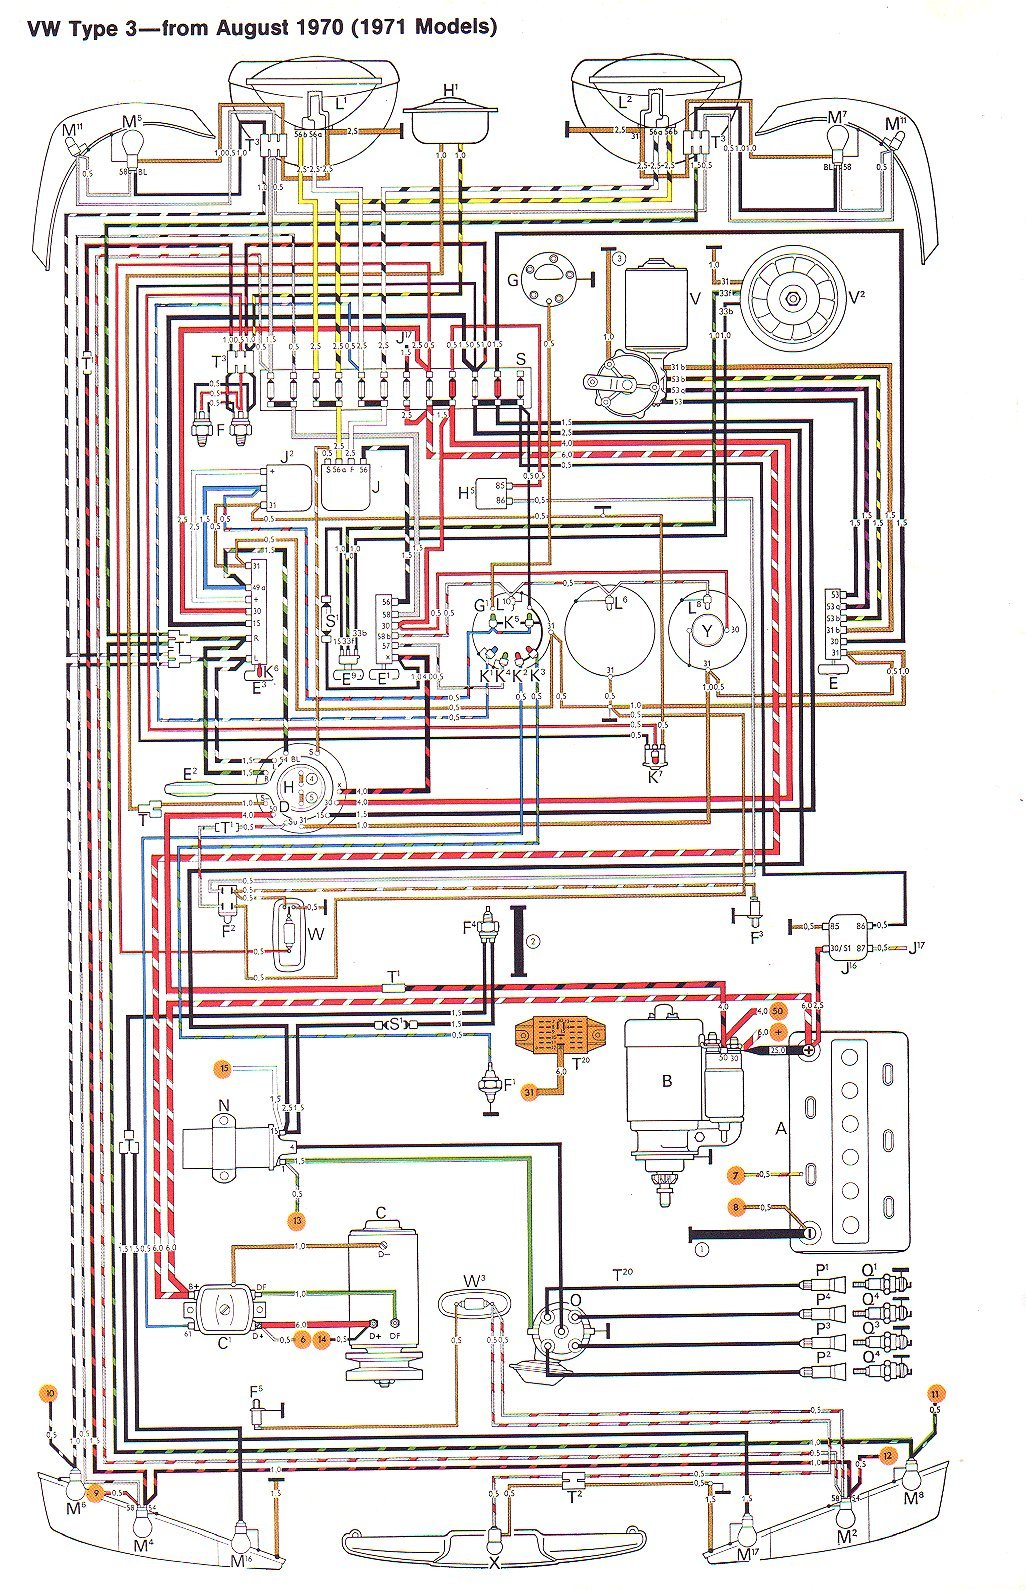 hight resolution of vw type 3 wiring diagrams 71 vw type 3 wiring diagram